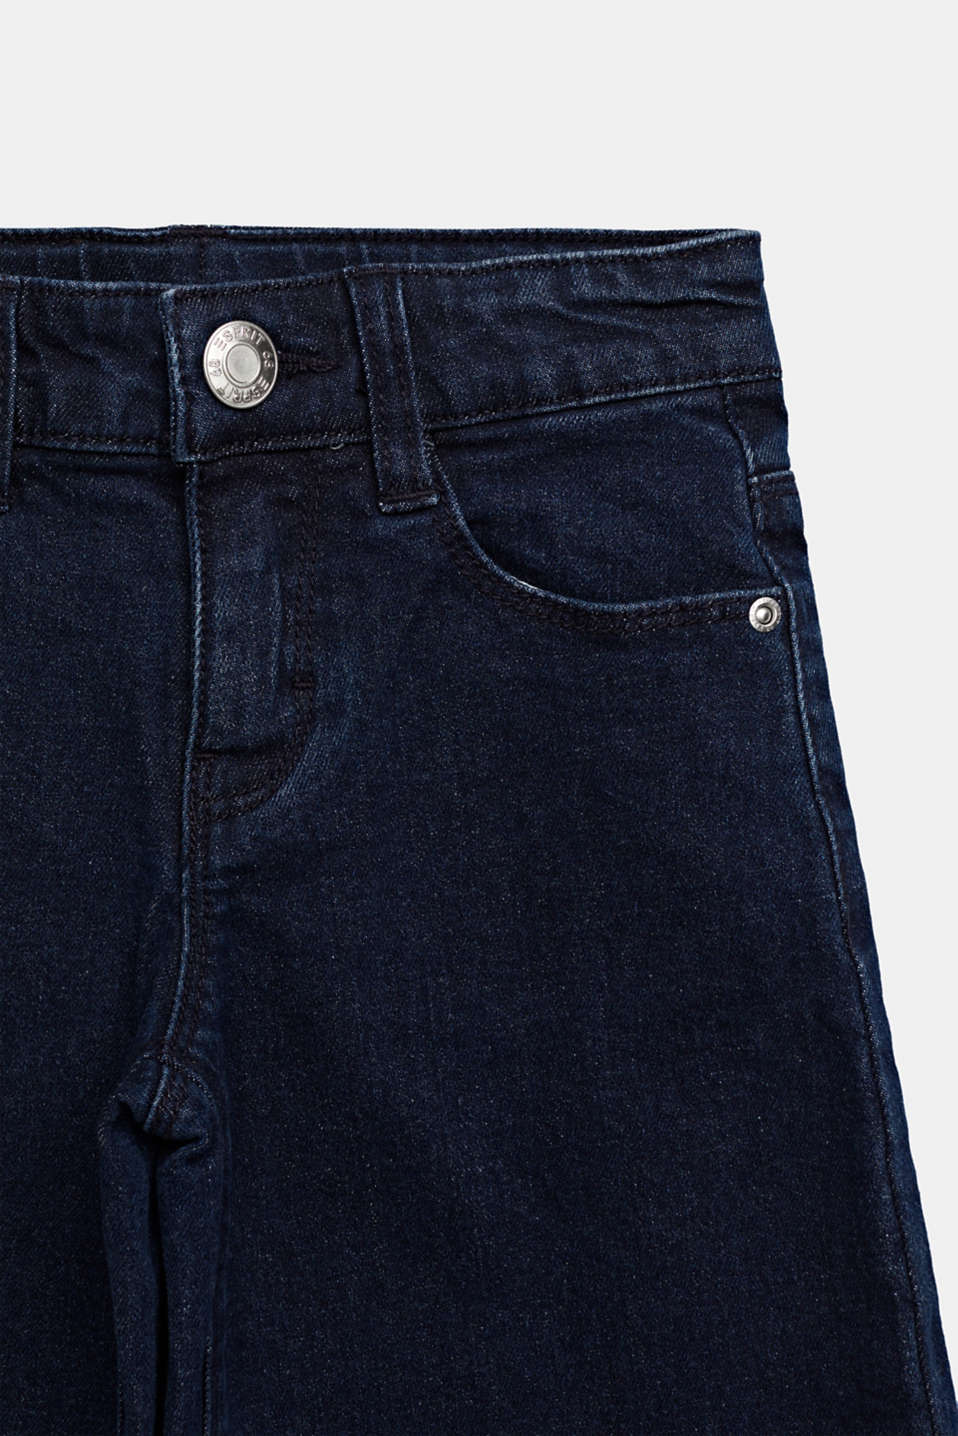 Culottes in stretch denim, adjustable waistband, DARK INDIGO DE, detail image number 2